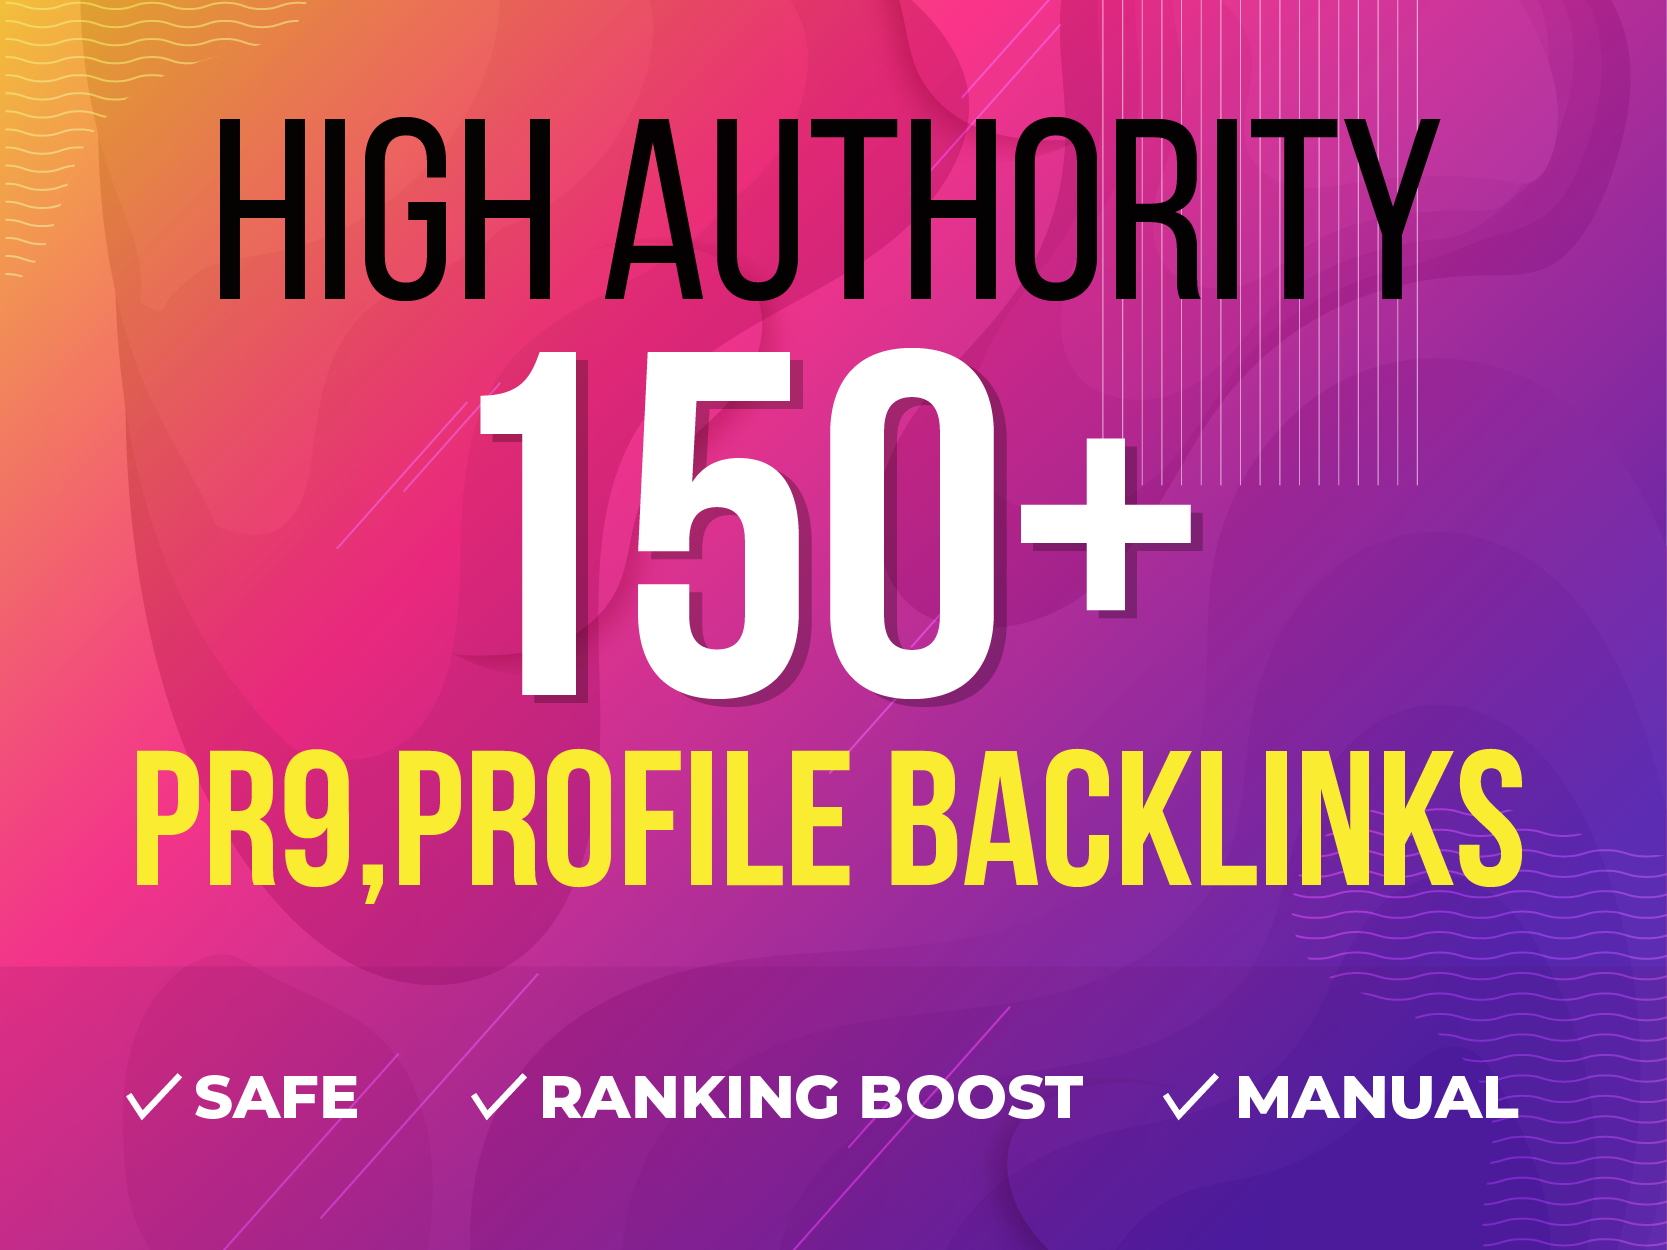 Manually 150+ High Authority PR9,  Profile and SEO Backlinks